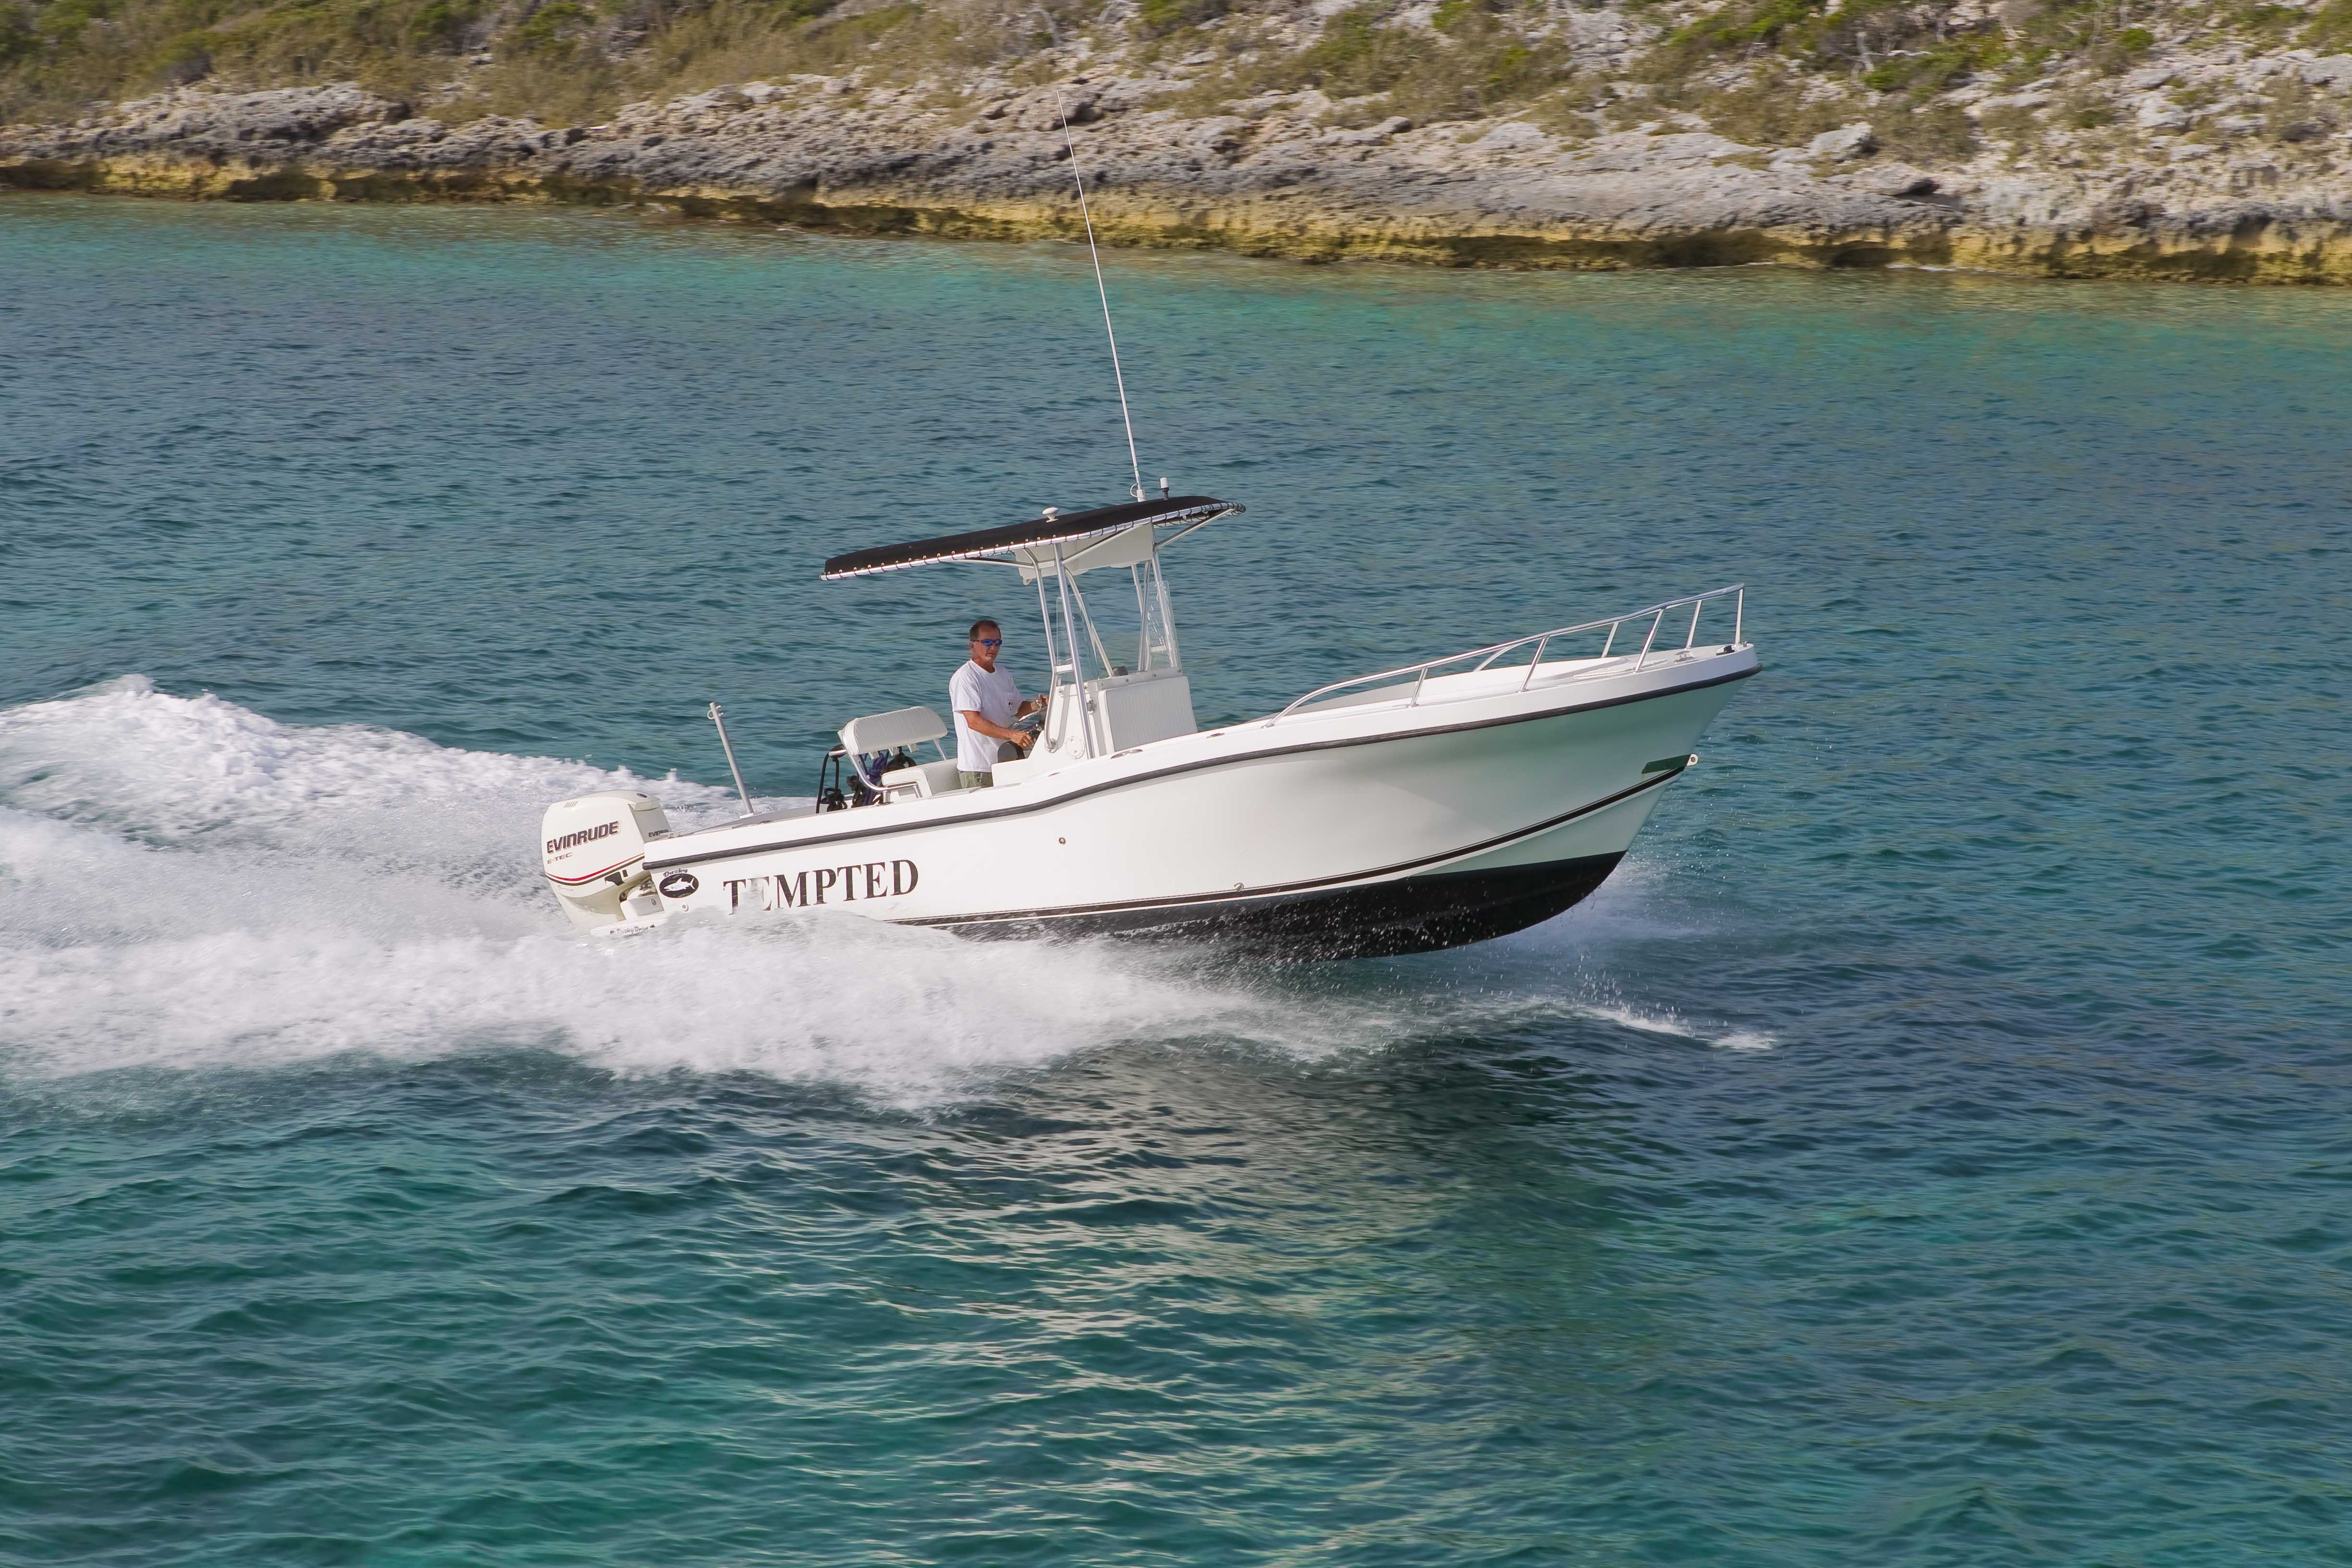 23' center console tender for fishing, diving, snorkeling, and site seeing.